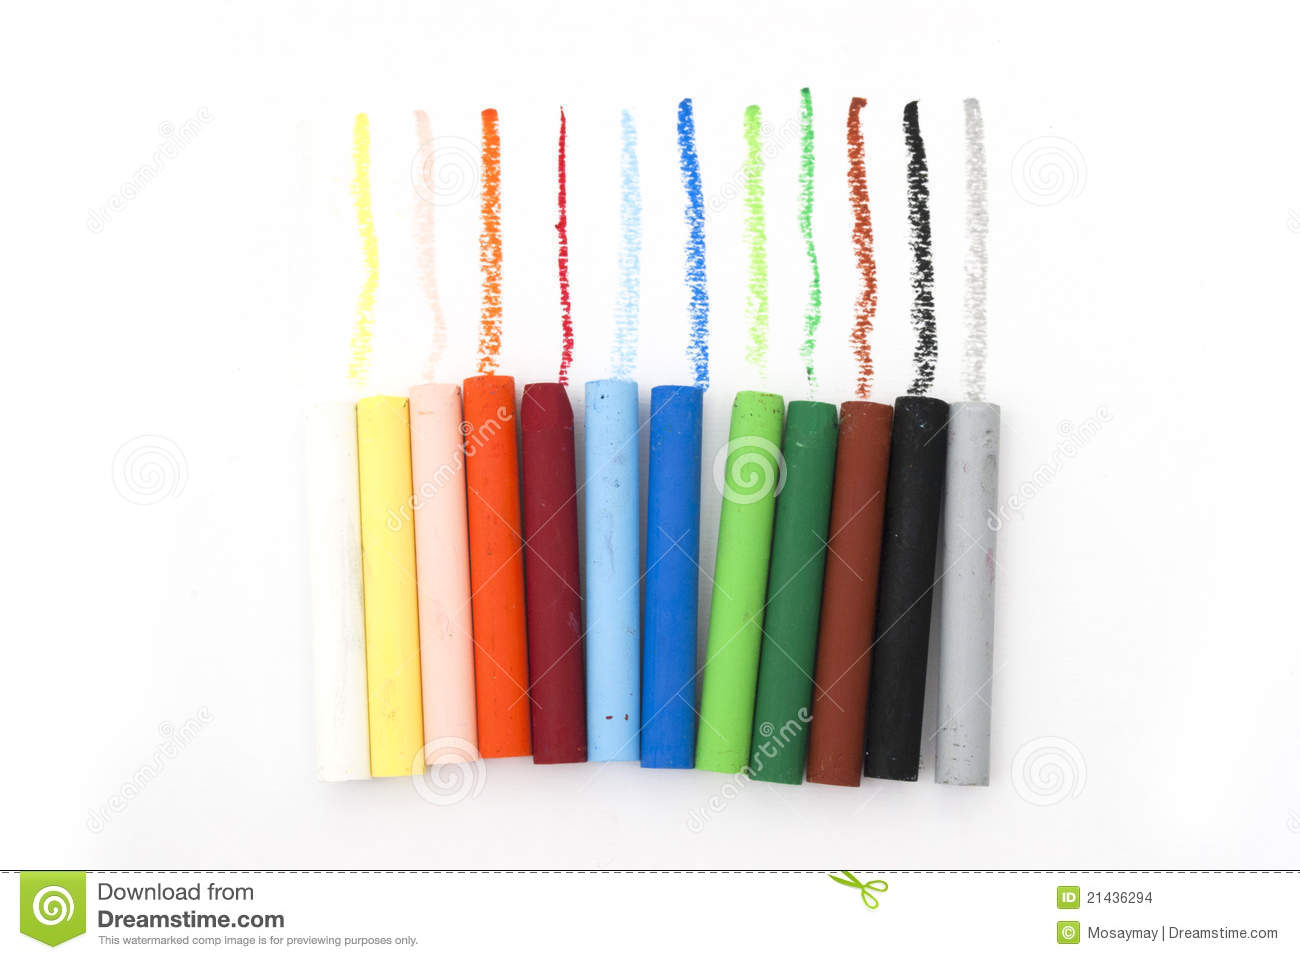 Oil pastel clipart vector royalty free Line Of Oil Pastels Stock Images - Image: 21436294 vector royalty free